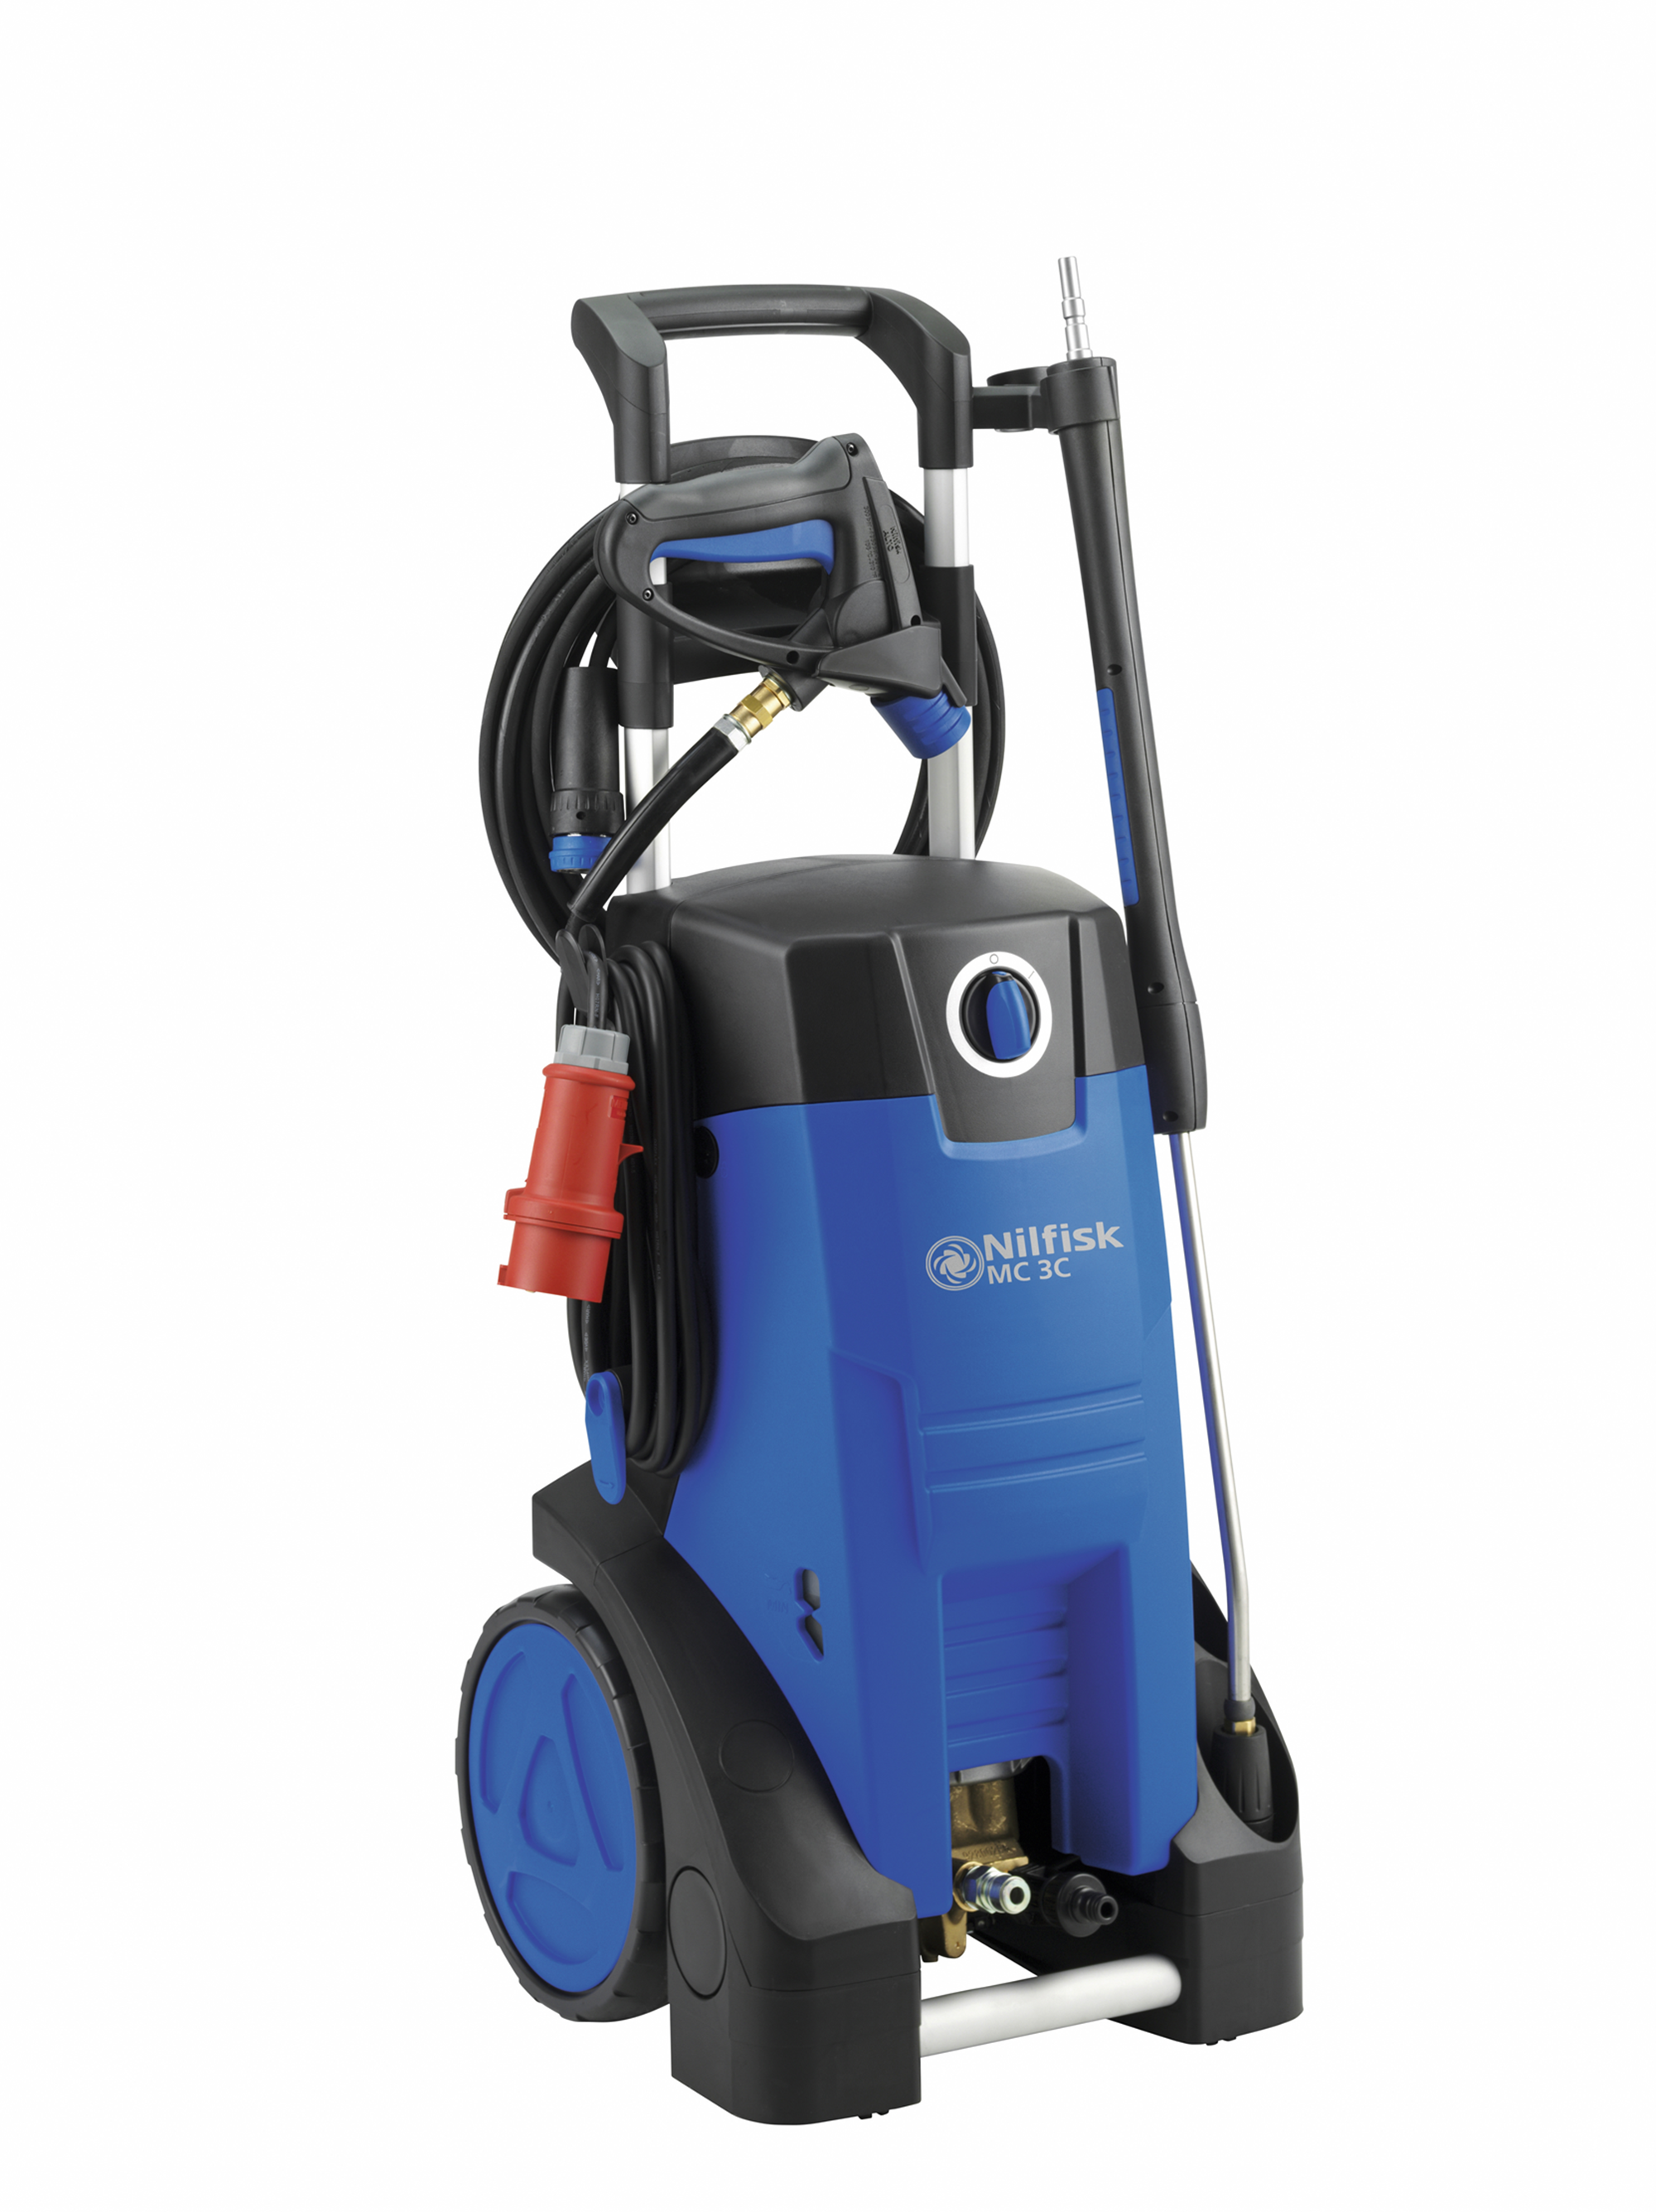 Product, Pressure washers, Mobile pressure washers, Mobile cold water pressure washers, Compact, Nilfisk, MC 3C-170/820